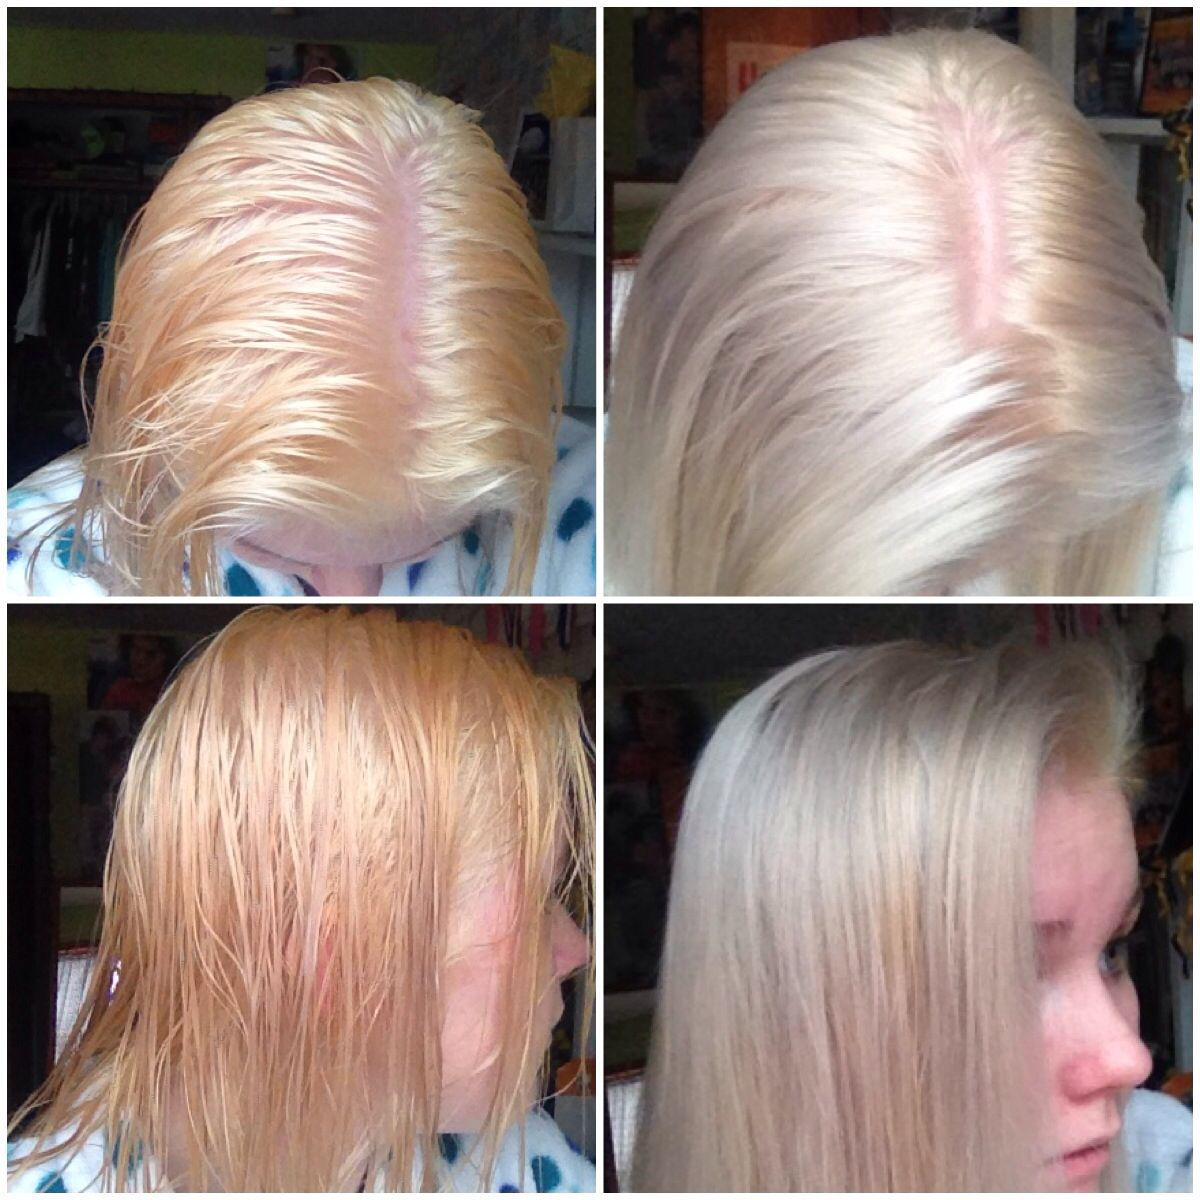 How To Lighten Hair With Hydrogen Peroxide Baking Soda How To Lighten Hair Baking Soda Hair Lightener Baking Soda For Hair